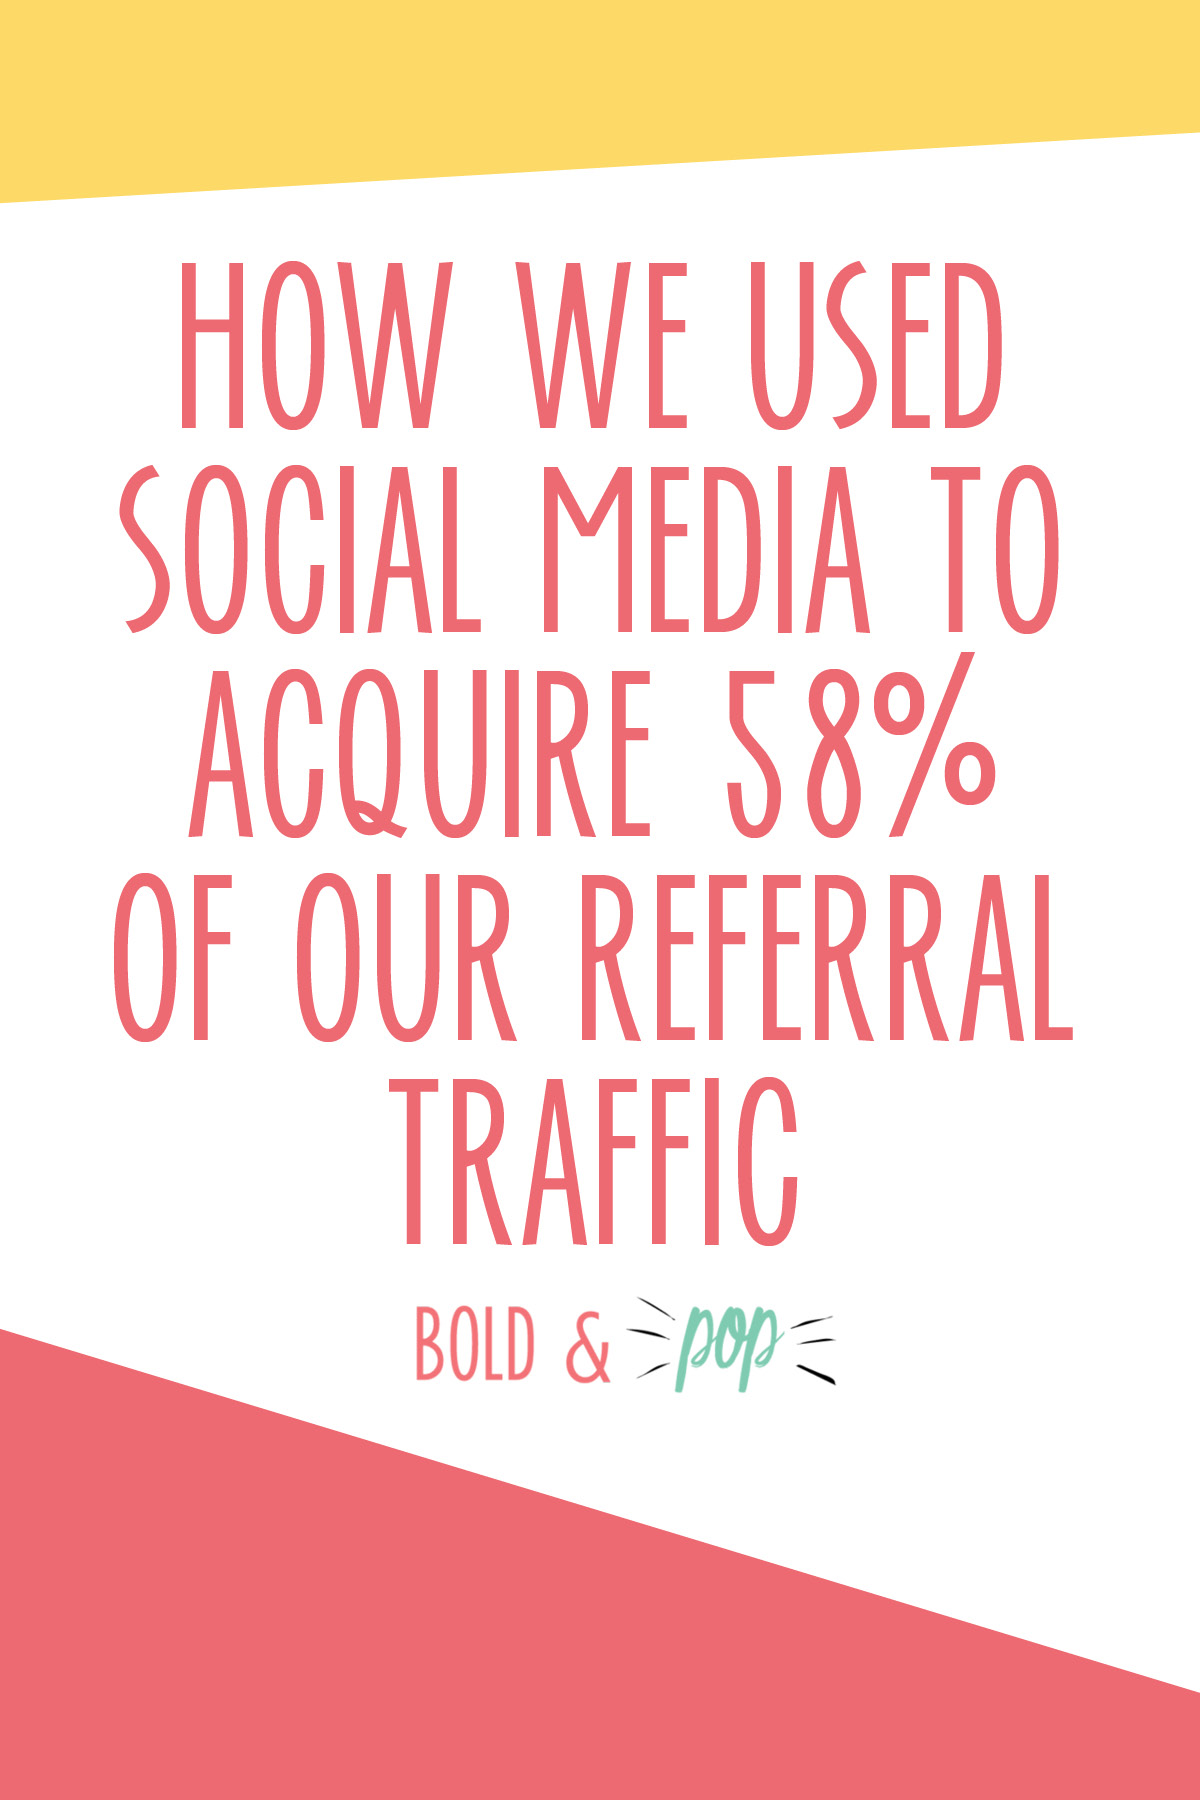 Bold & Pop : How We Used Social Media to Acquire 58% of our Referral Traffic